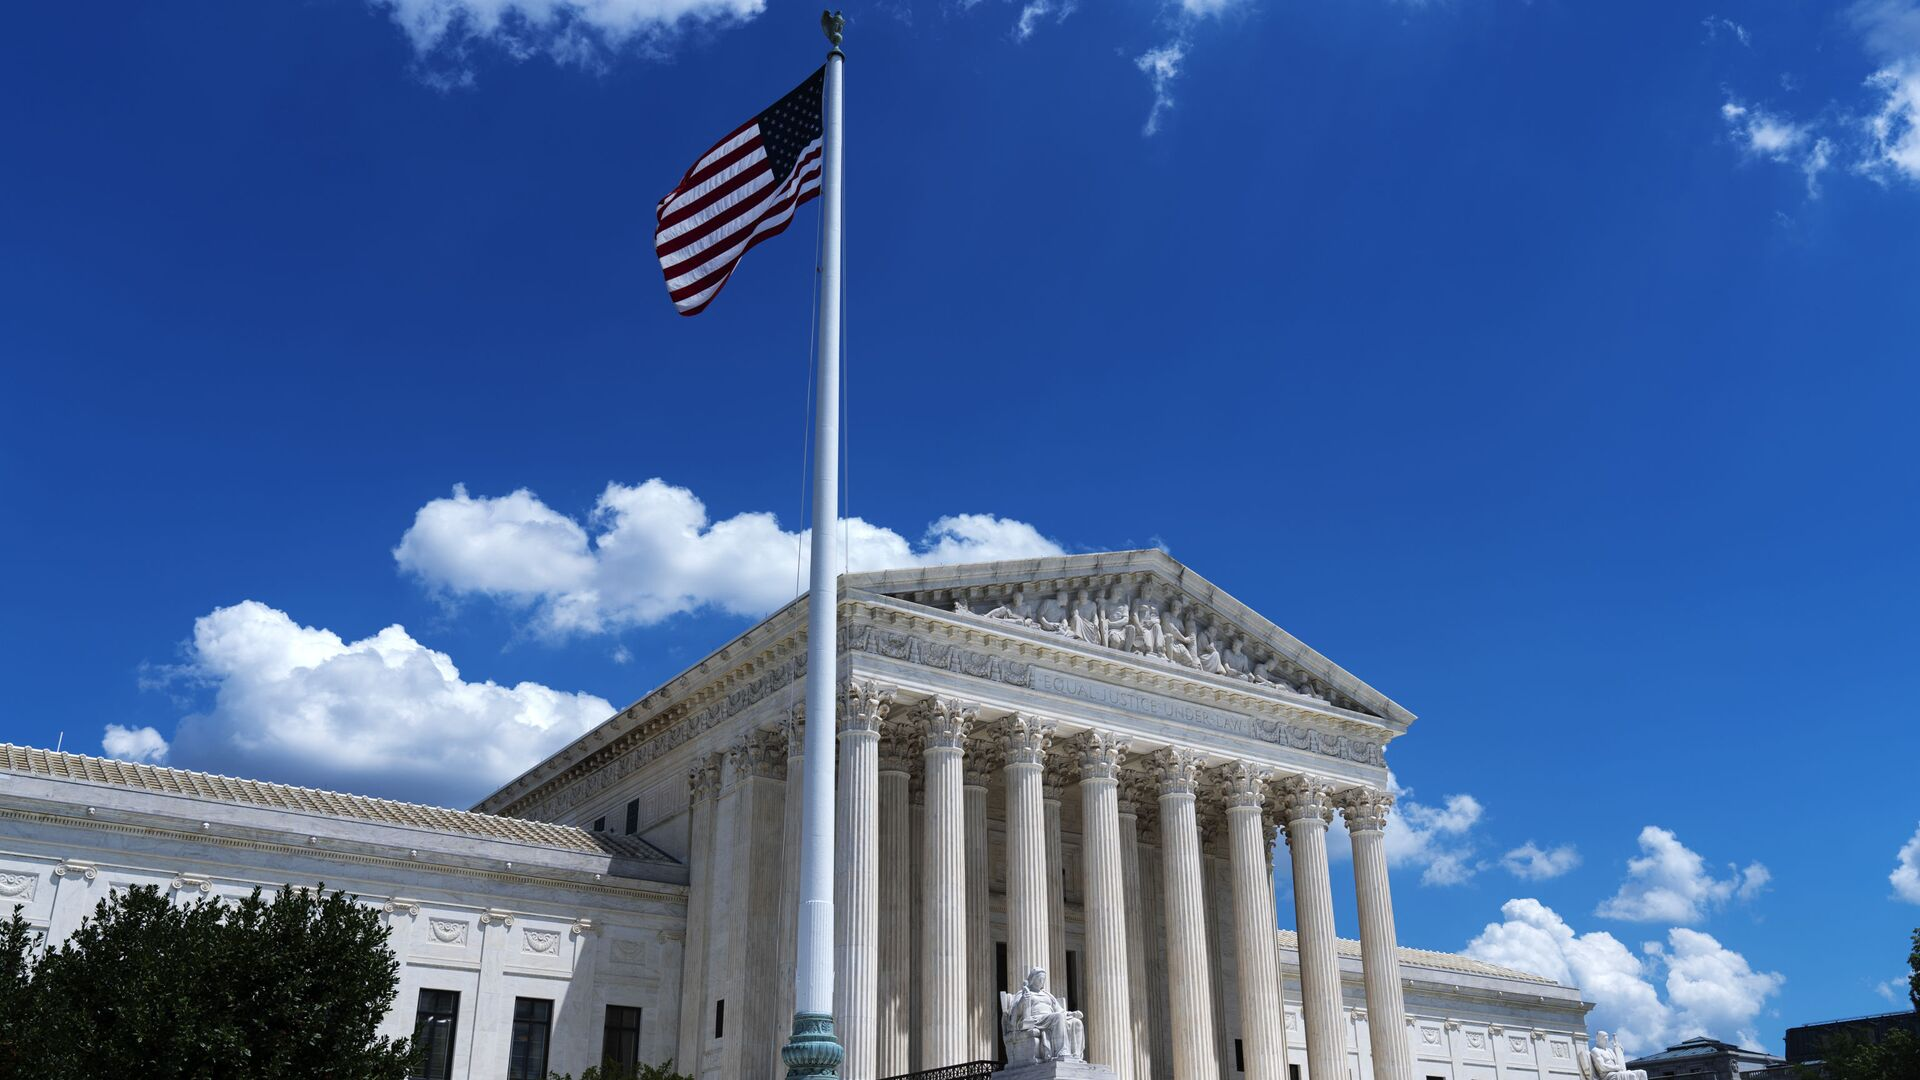 The US Supreme Court is seen on Capitol Hill in Washington, Wednesday, June 30, 2021 - Sputnik International, 1920, 14.09.2021